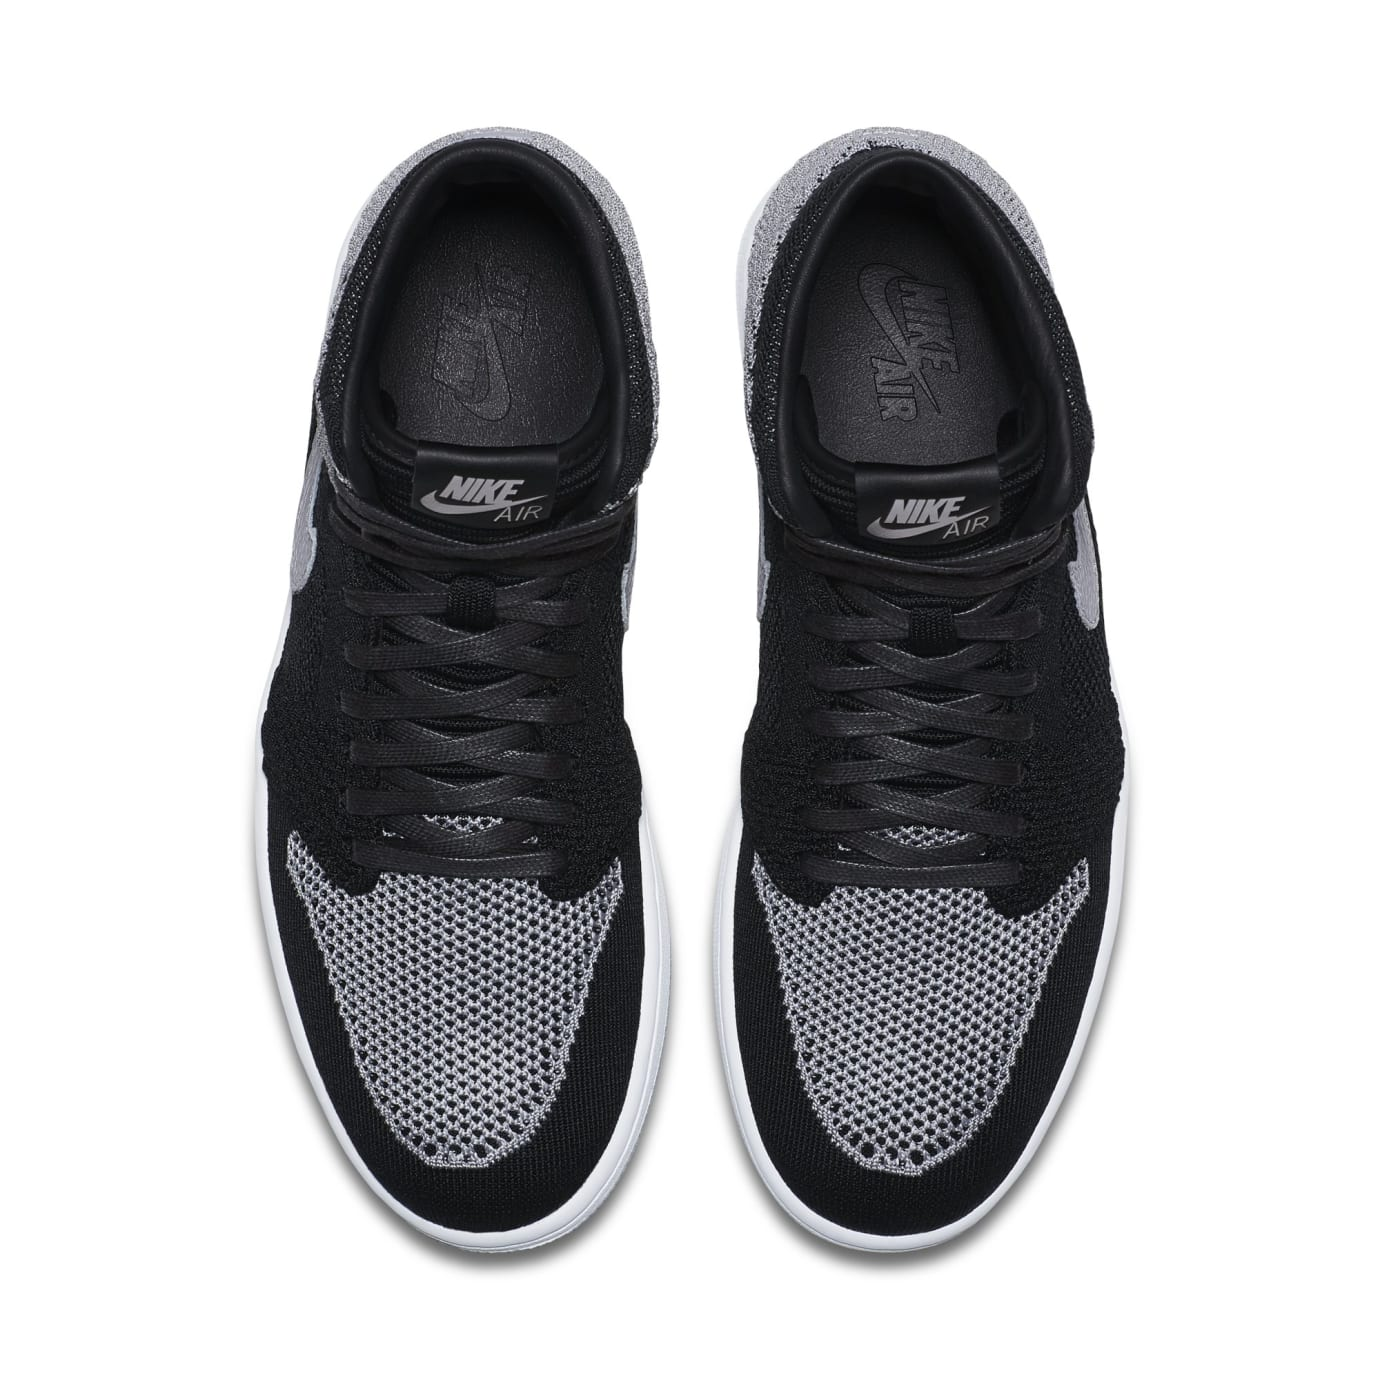 bba3cc17bd97c5 Image via Nike Air Jordan 1 Flyknit  Shadow  Black Medium Grey-White 919704- 003